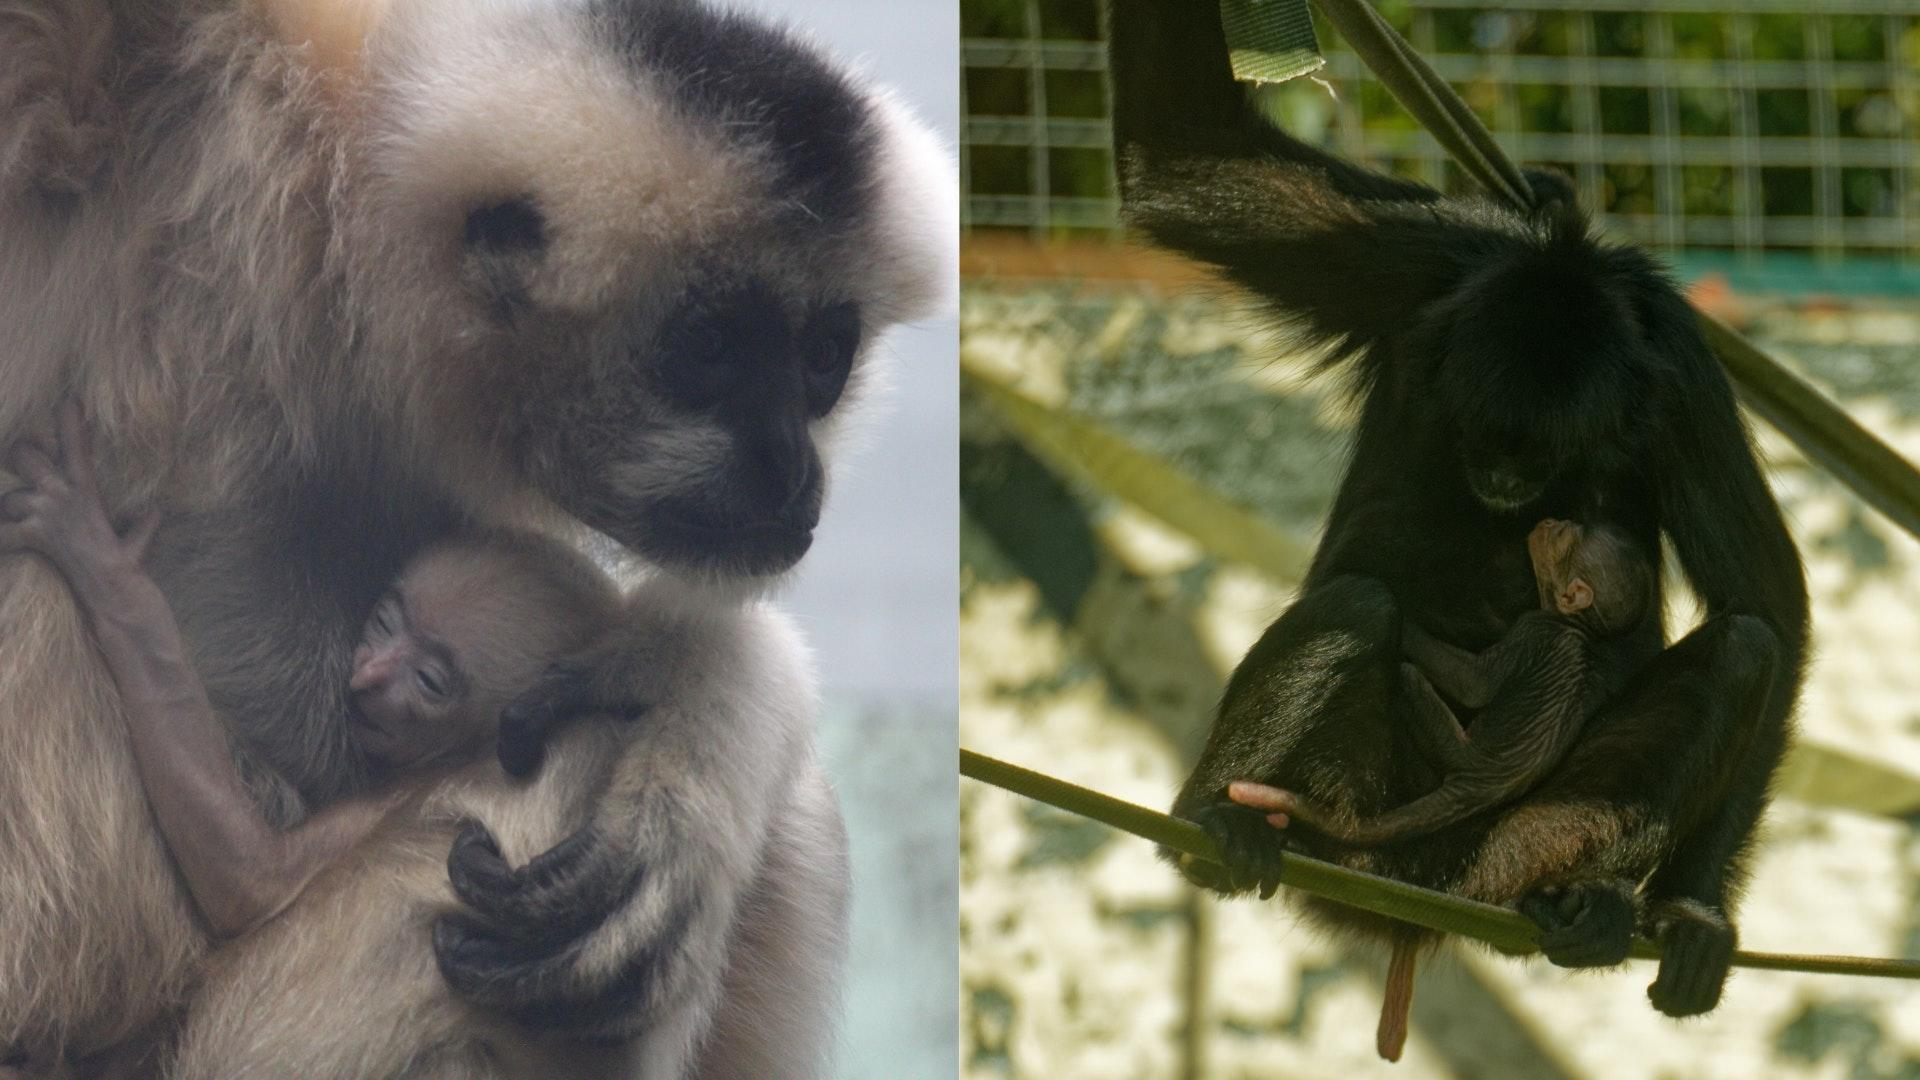 Births of two babies from endangered monkey species celebrated at Twycross Zoo